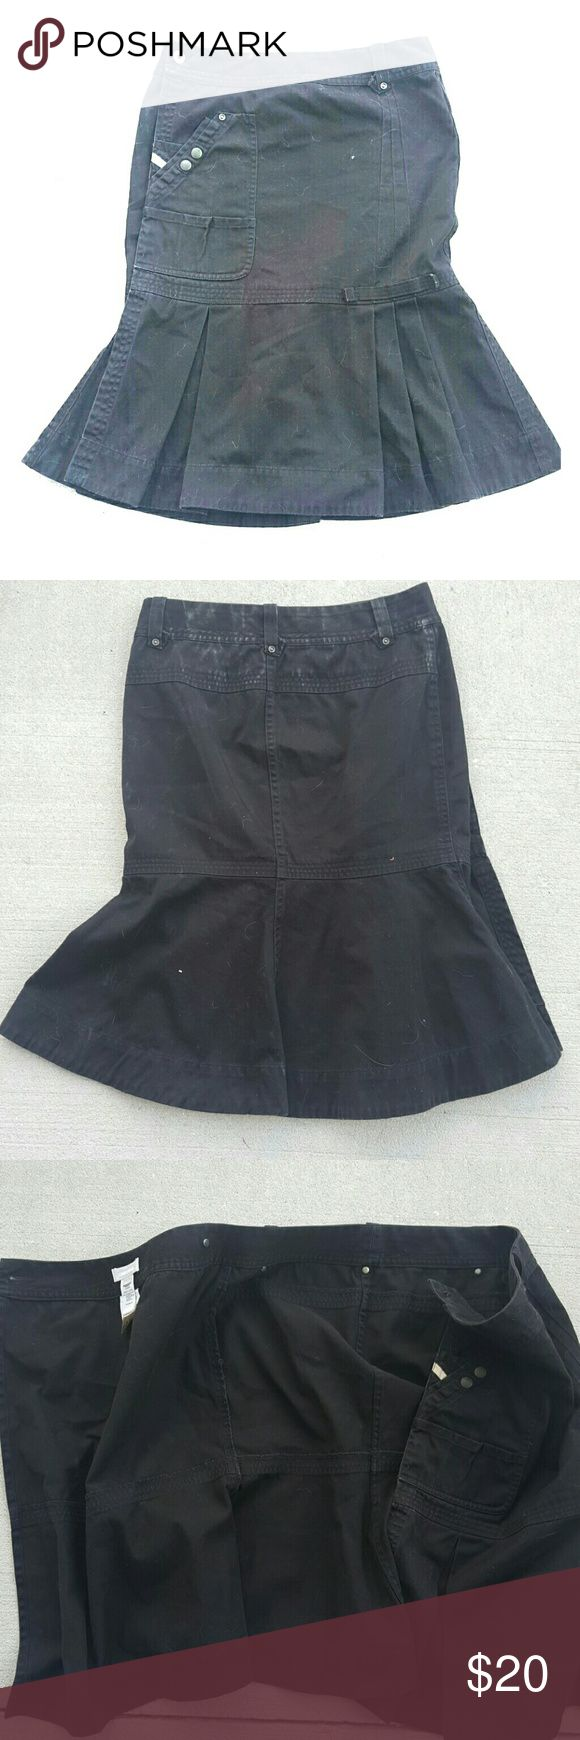 ✴️Diesel black wrap skirt fitted then flares out Diesel black wrap skirt with pleated bottom size 26 fading on hard to see in photos.  In the second photo you can see on top of the skirt around the waist that there is some fading Diesel Skirts Midi